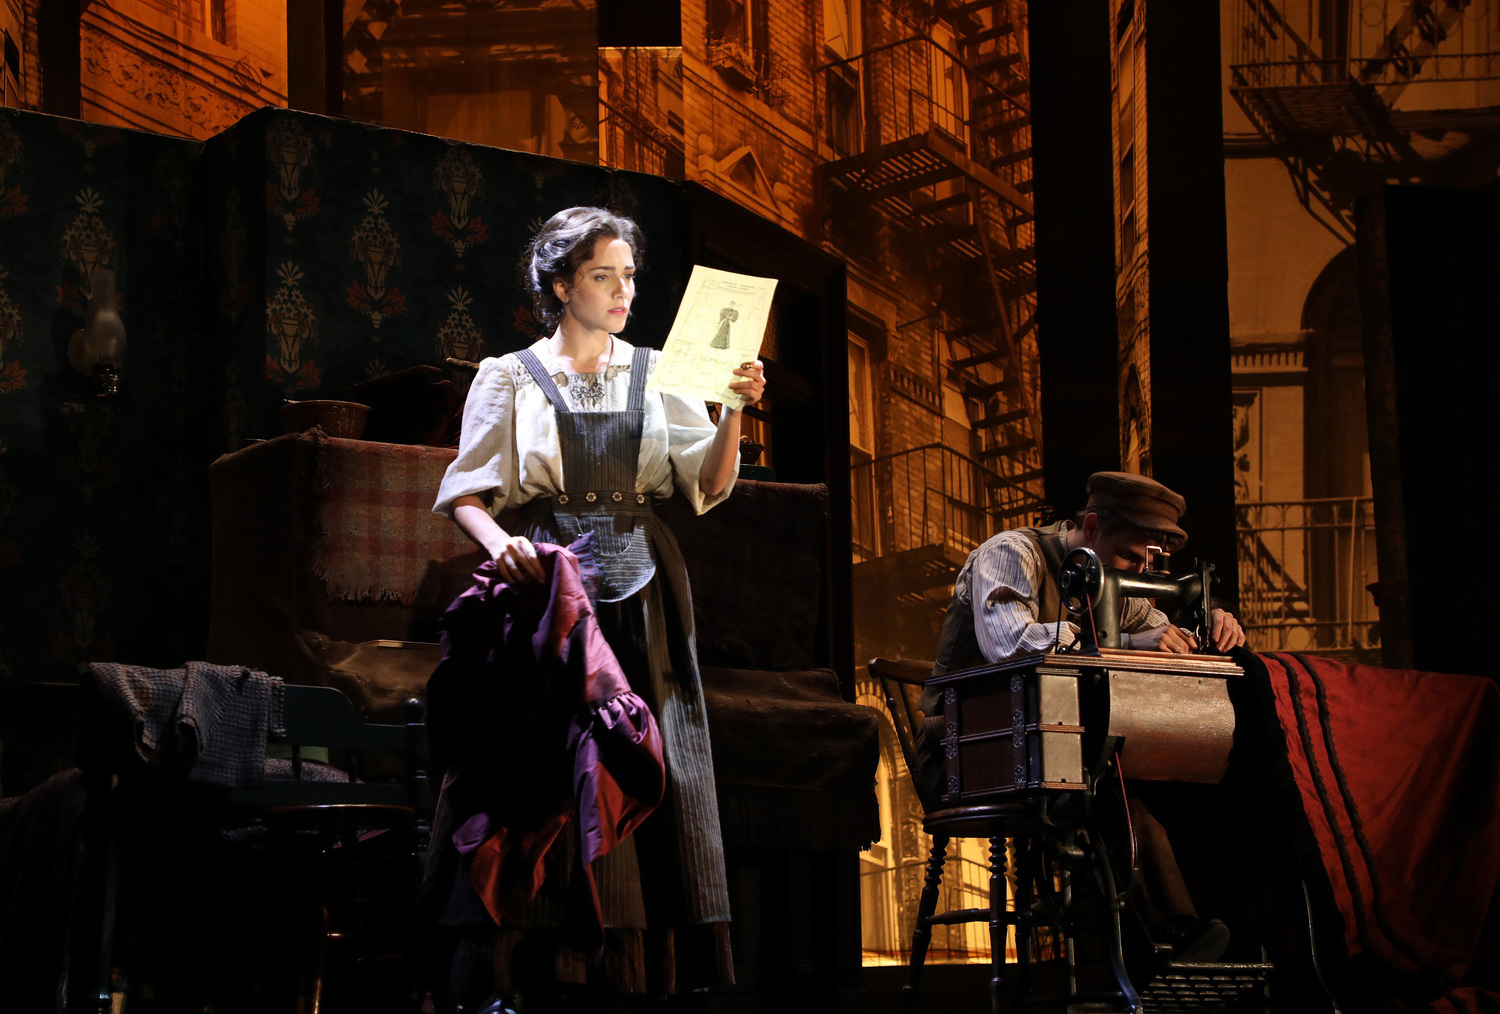 BWW Review: RAGS at Goodspeed Opera House